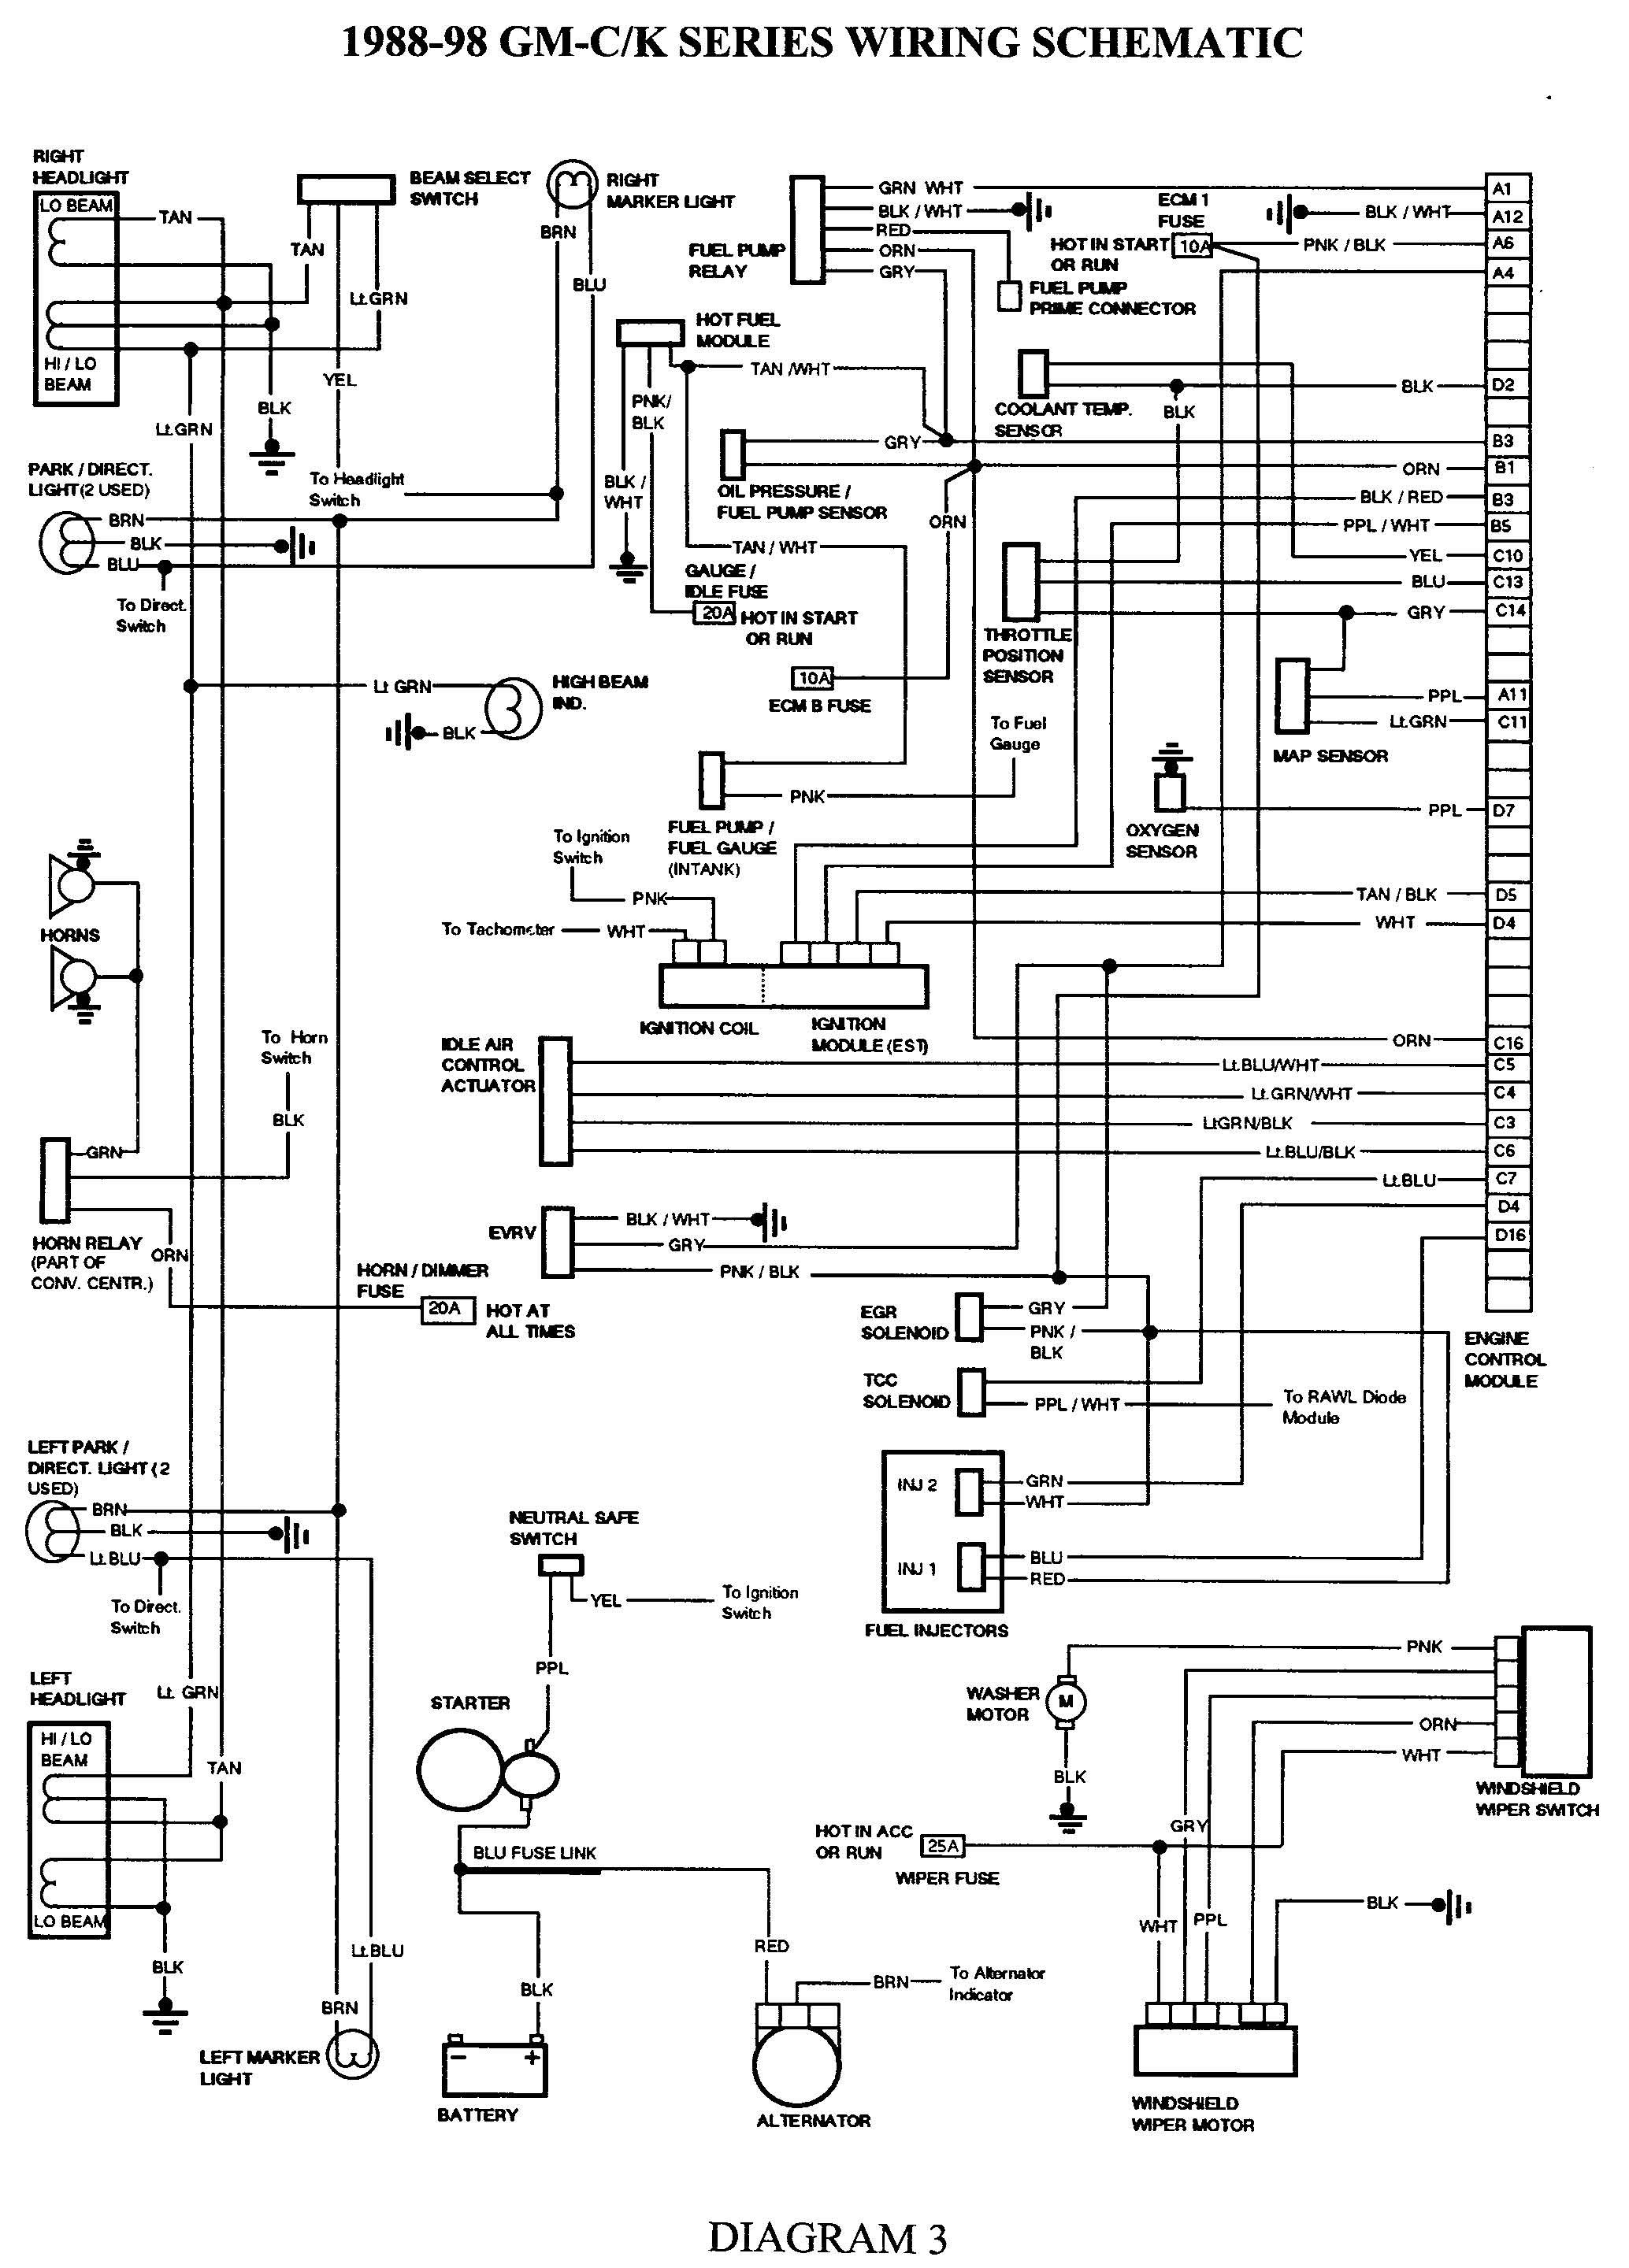 92 accord external coil wiring diagram schematic diagram1988 chevy coil wiring wiring diagram online 1989 honda [ 2068 x 2880 Pixel ]